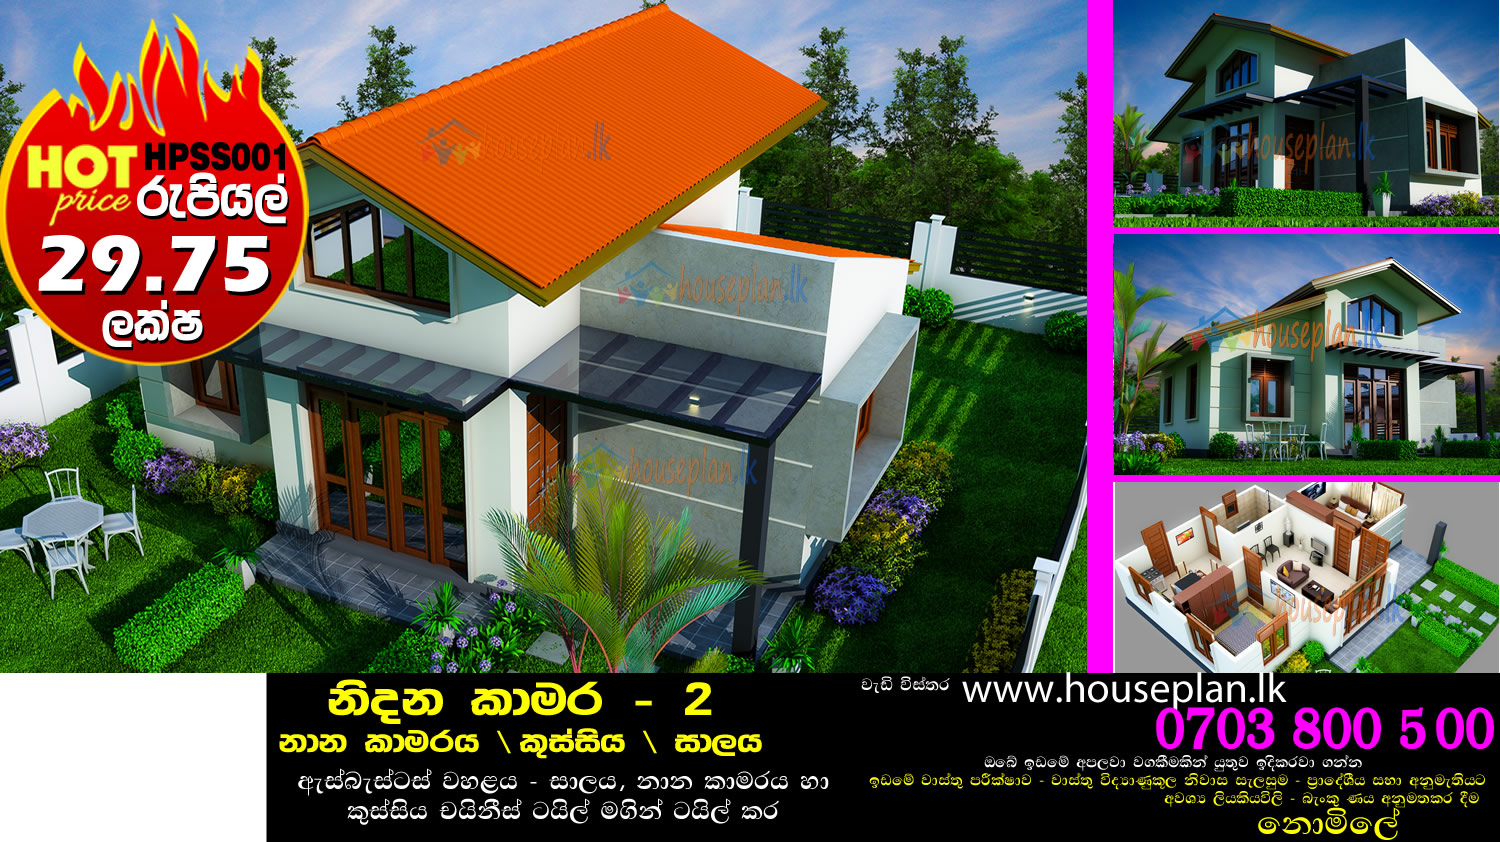 Sri lanka house plan lk for Best house design companies